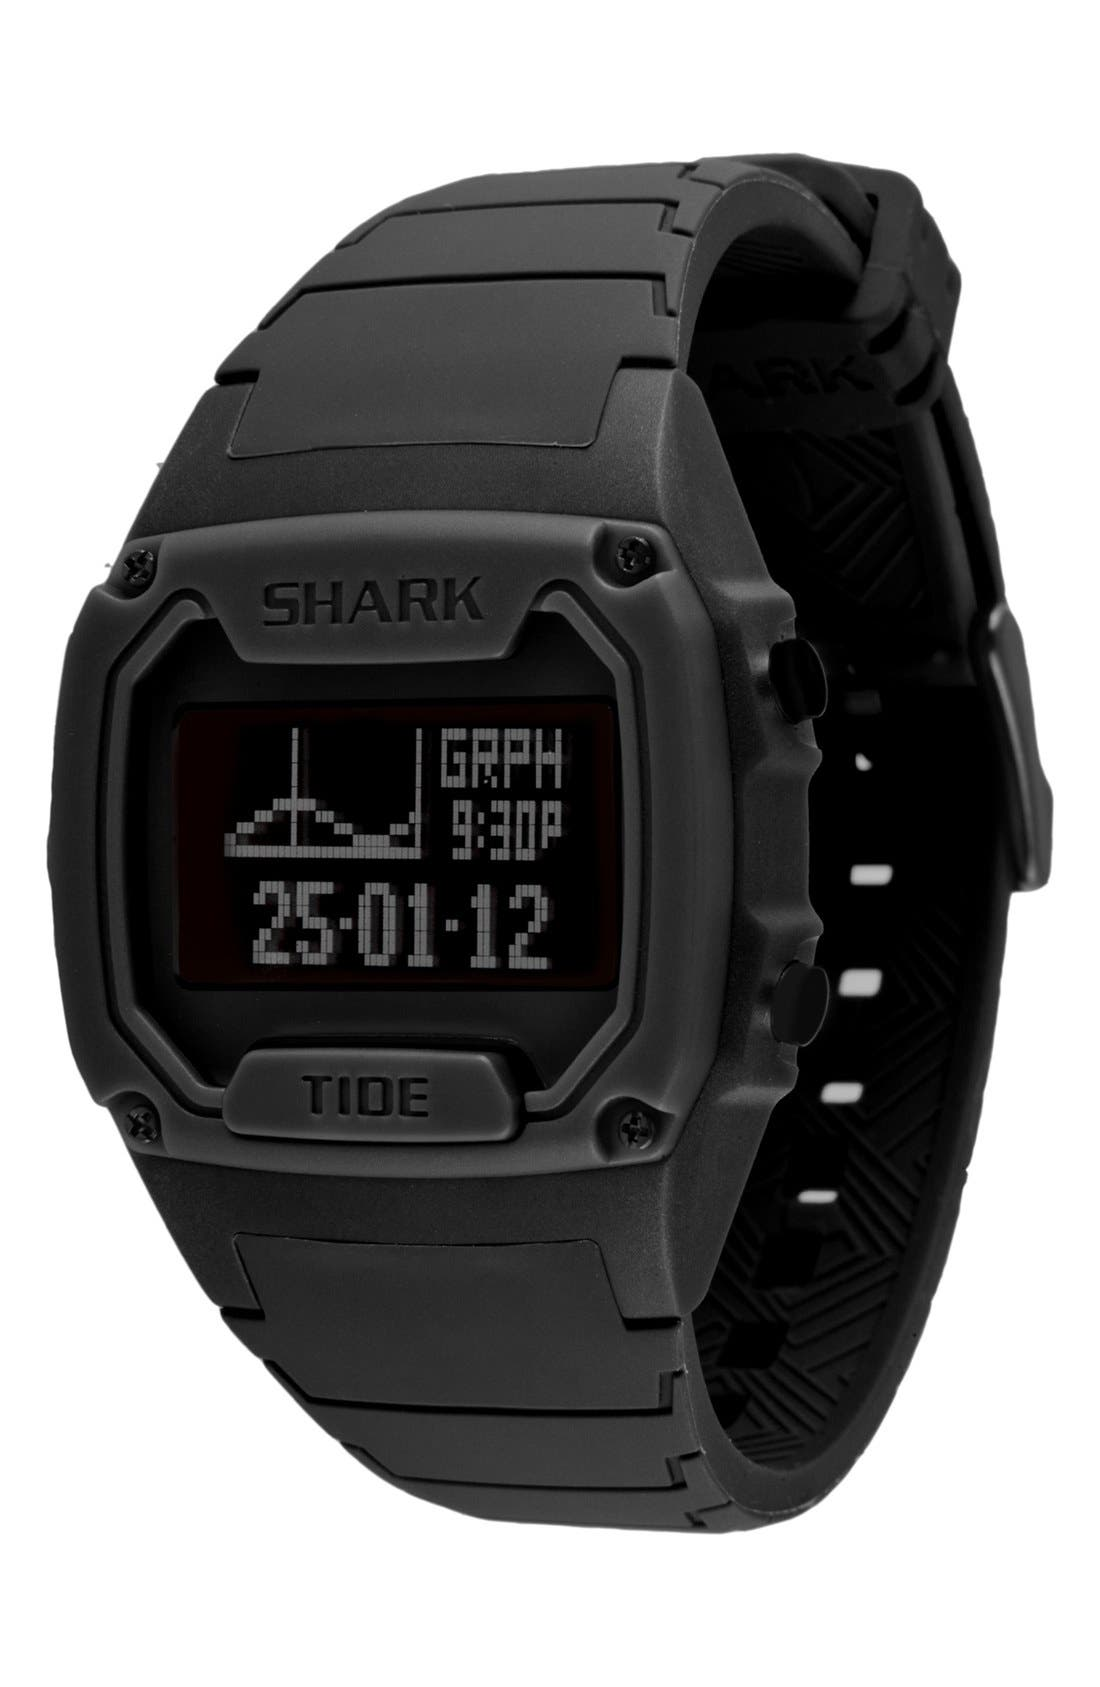 Main Image - Freestyle 'Shark Classic Tide' Digital Watch, 38mm